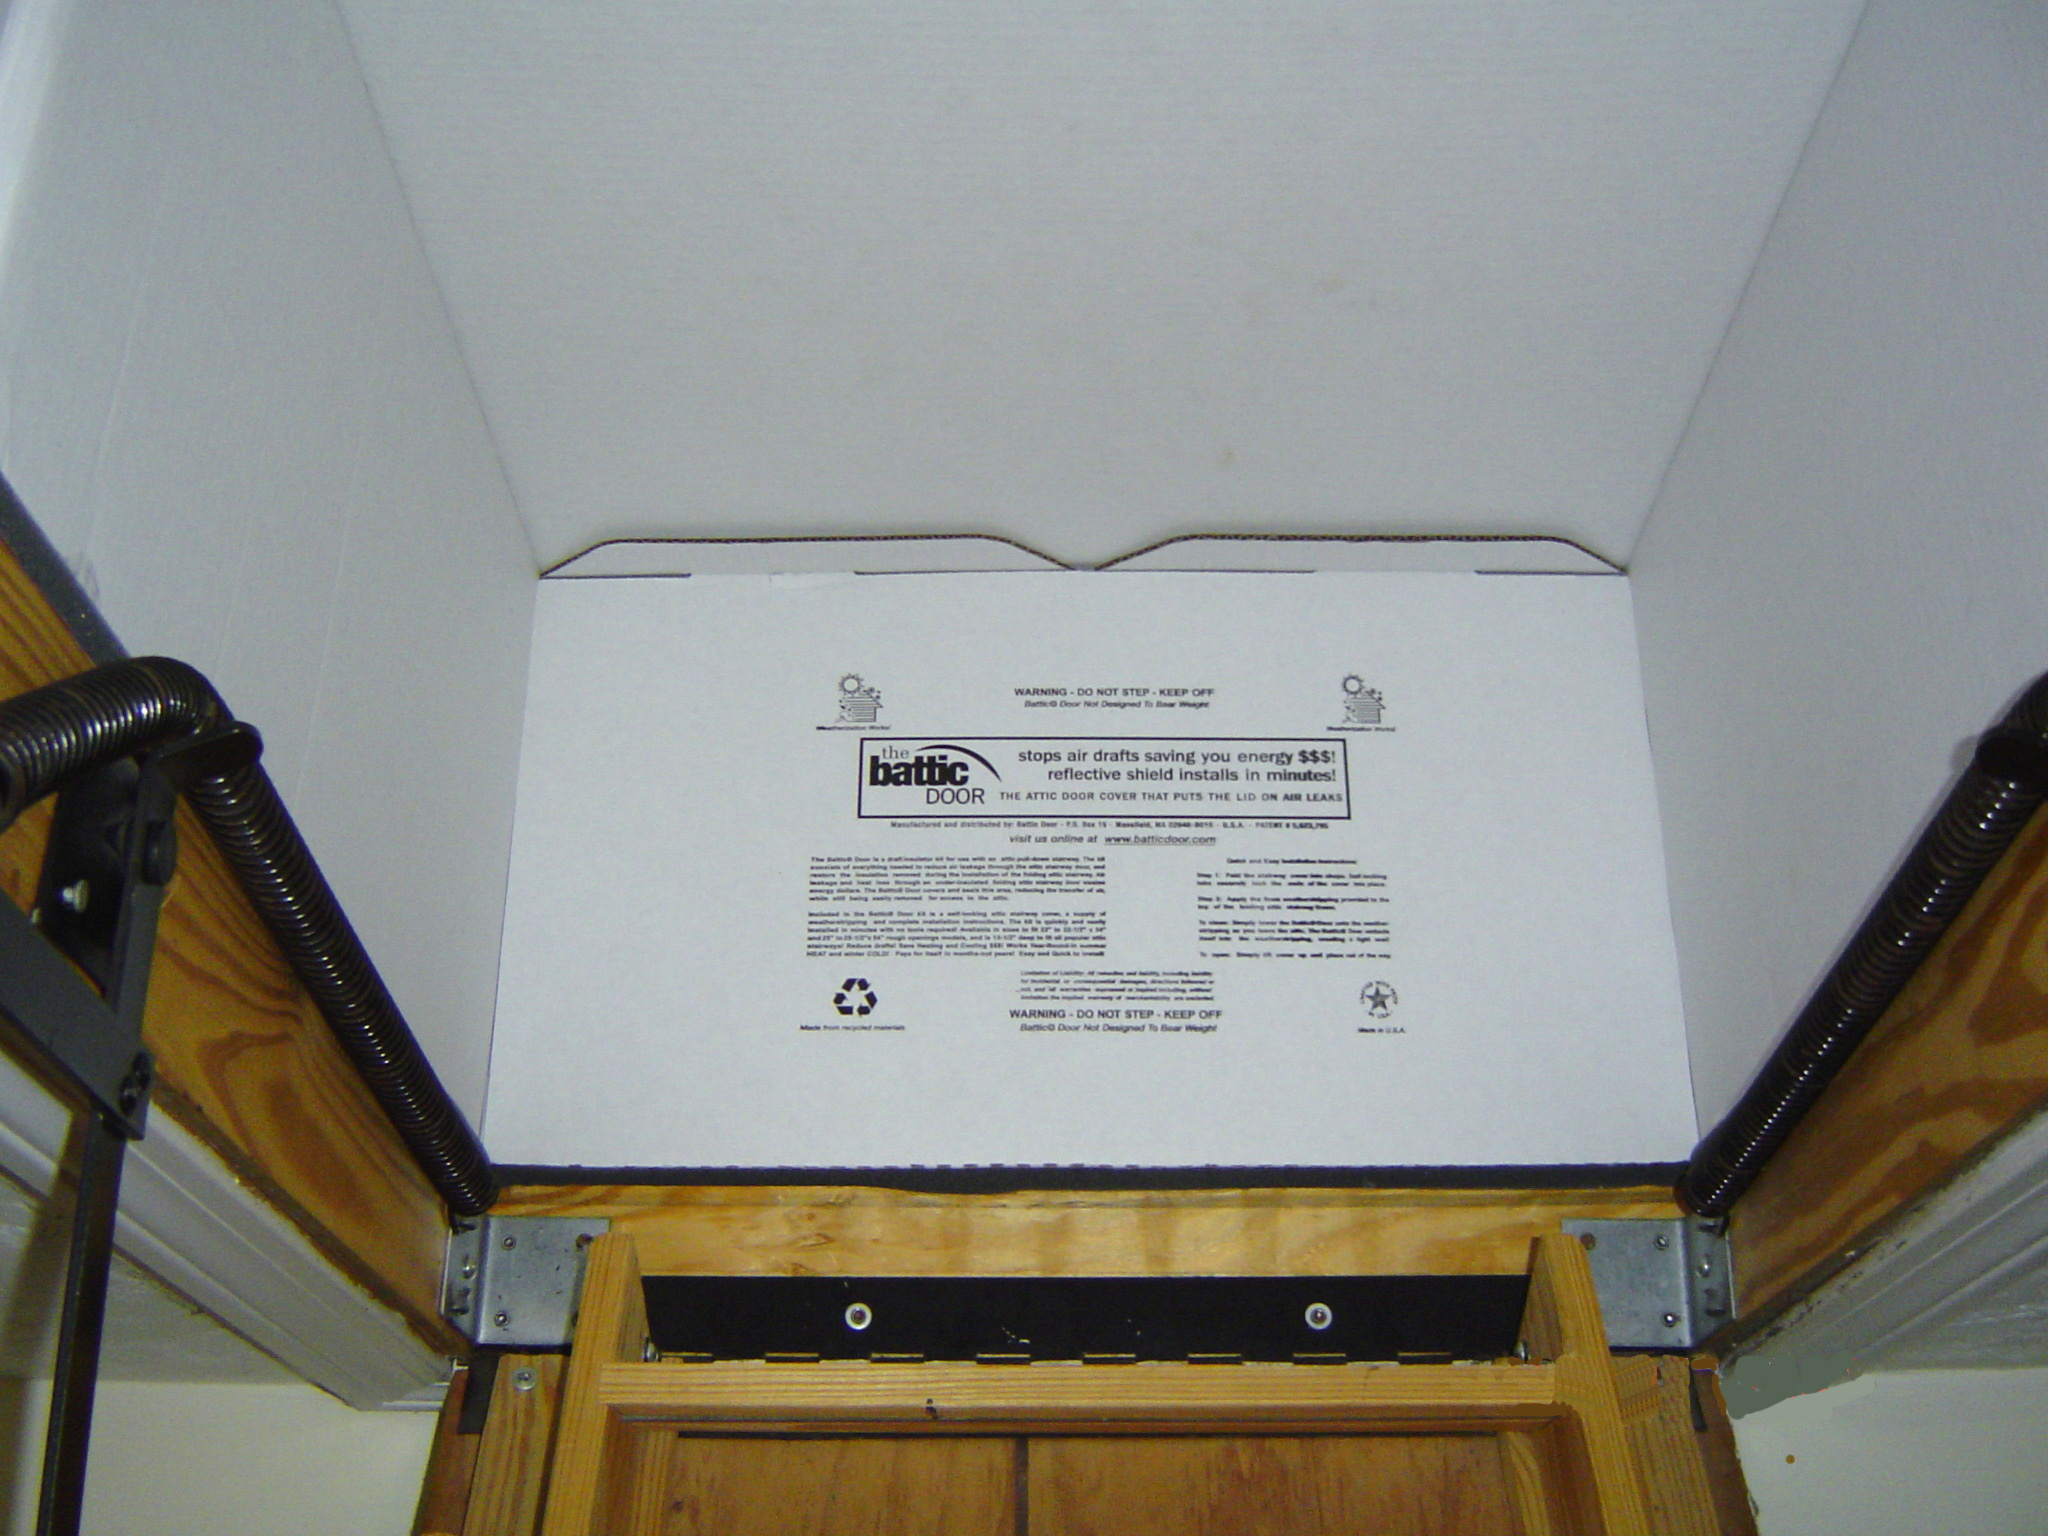 ... photo - This close-up view of the cardboard box shows how well it seals again the the attic floor to block air leakage. - Photo credit - Battic Door & Dulley Column - Color graphics